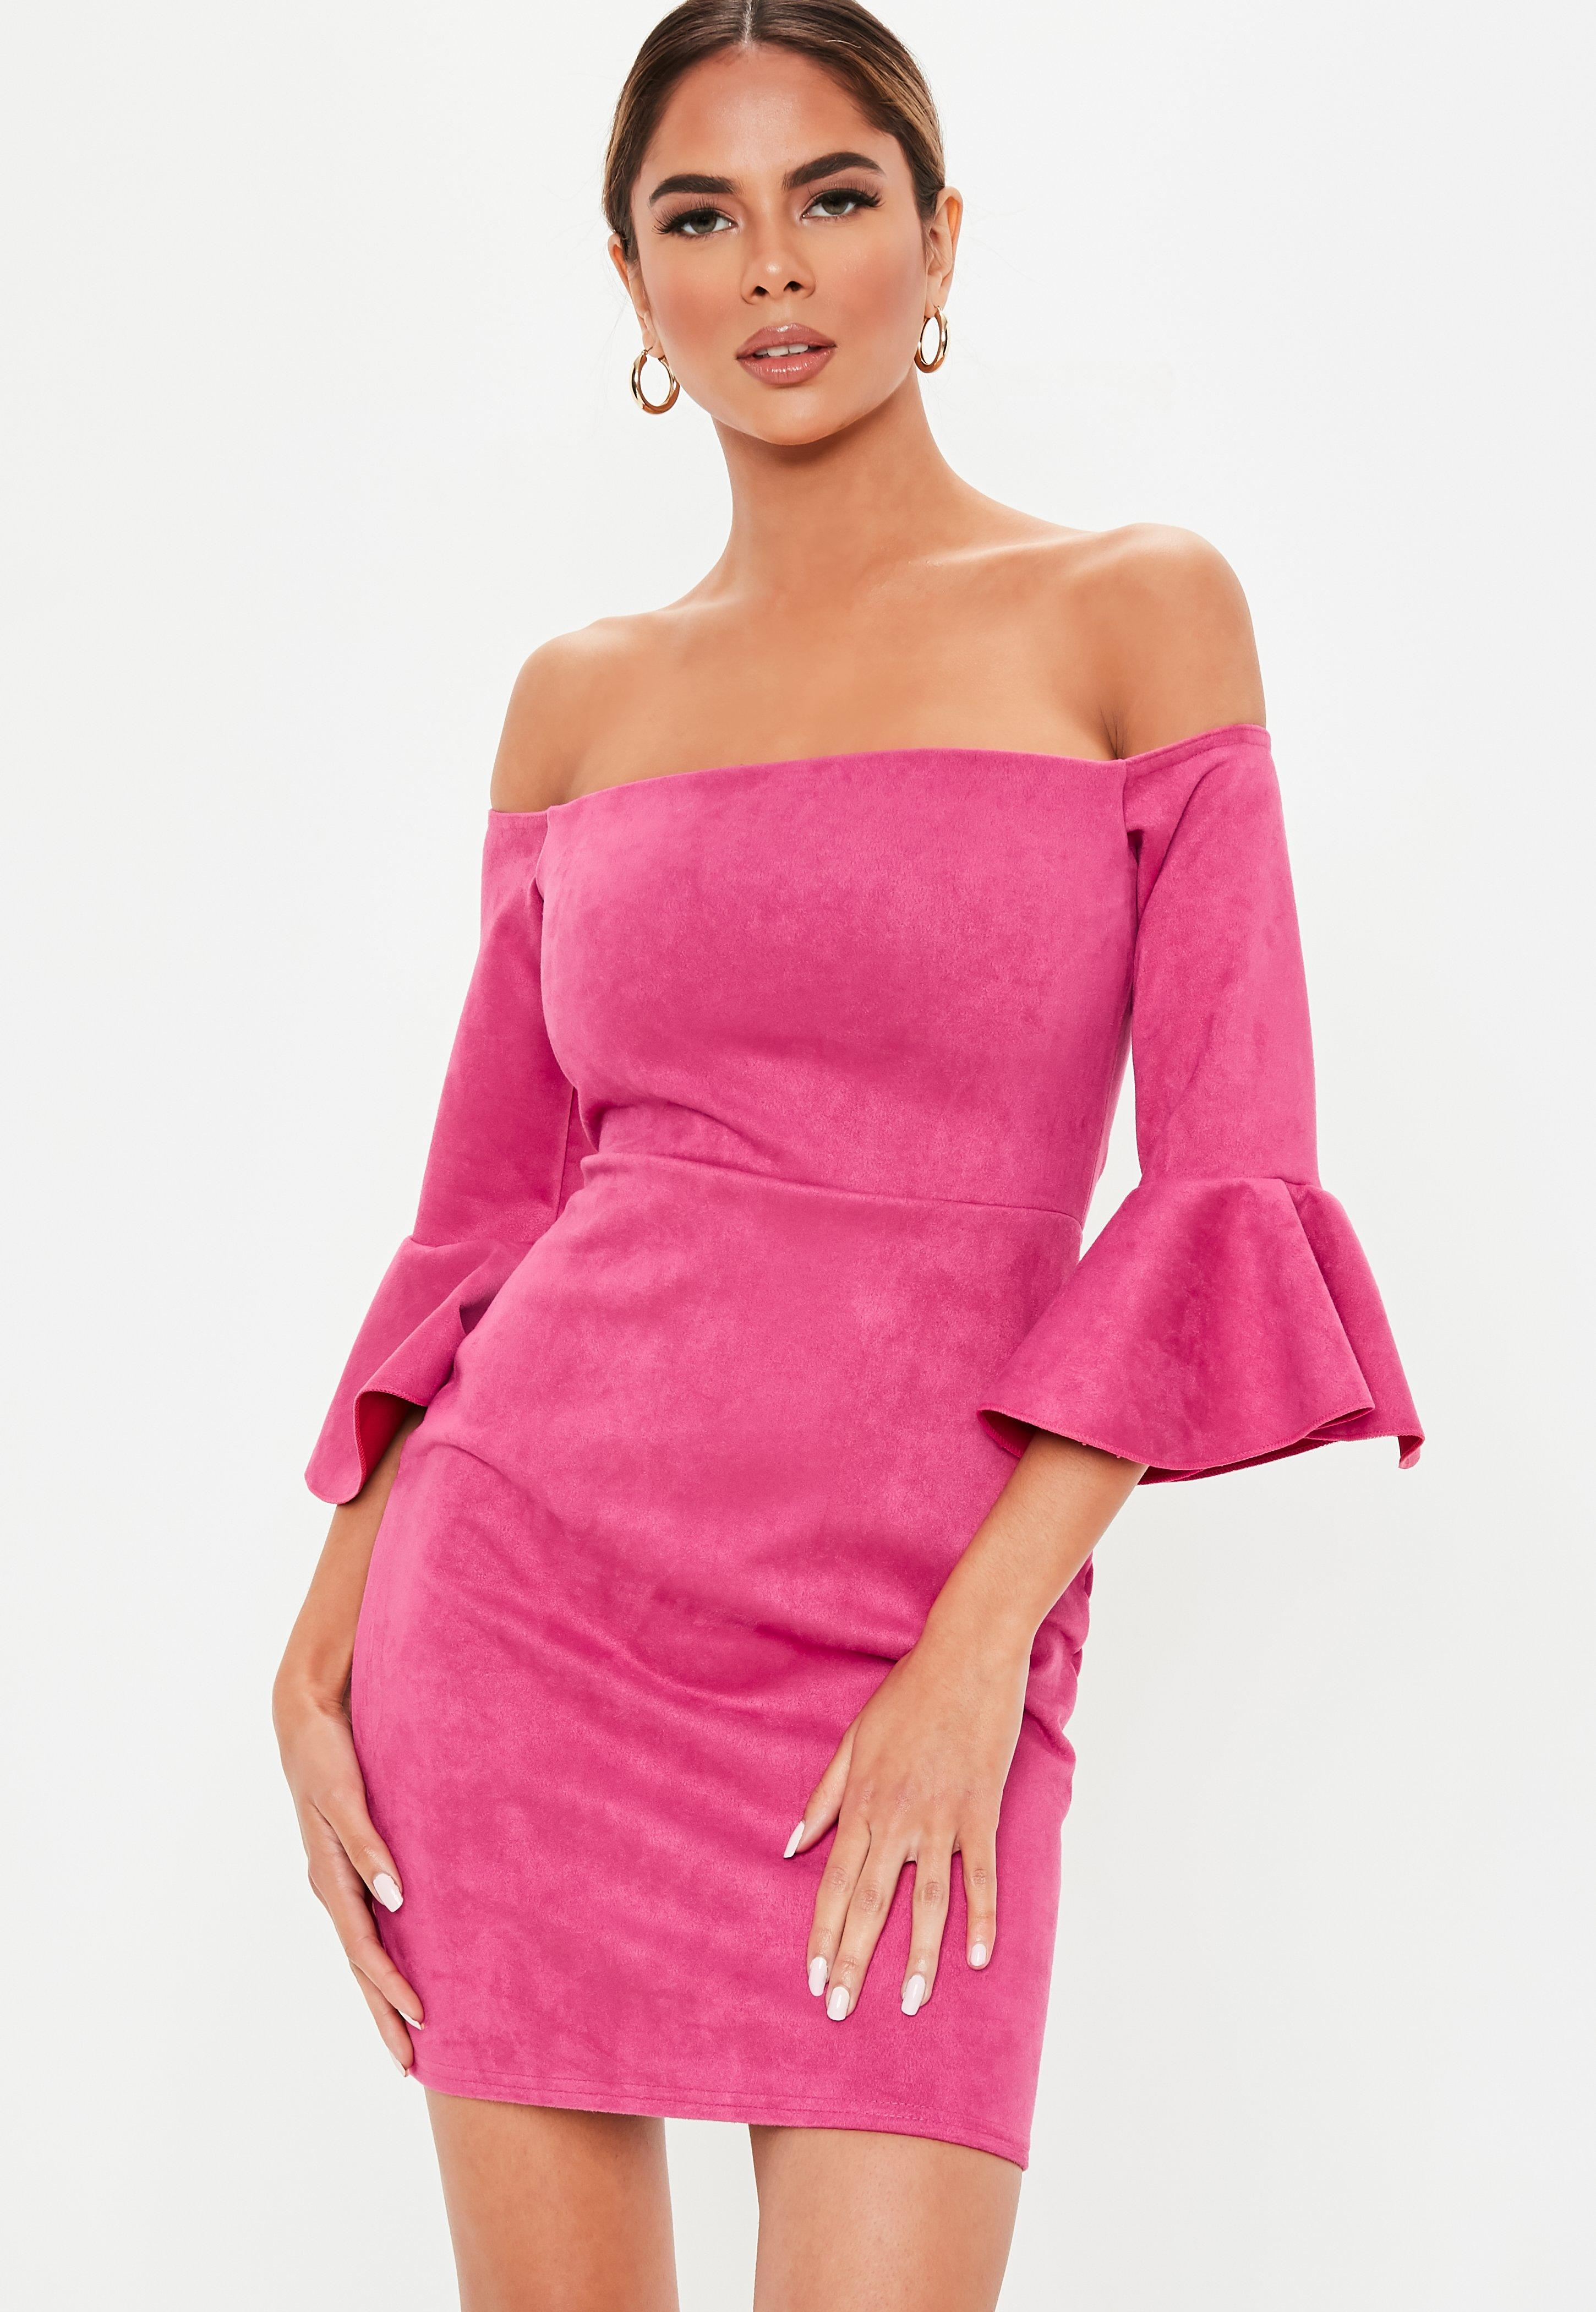 538aa86b0632 Suede Dress - Faux Suede Dresses | Missguided